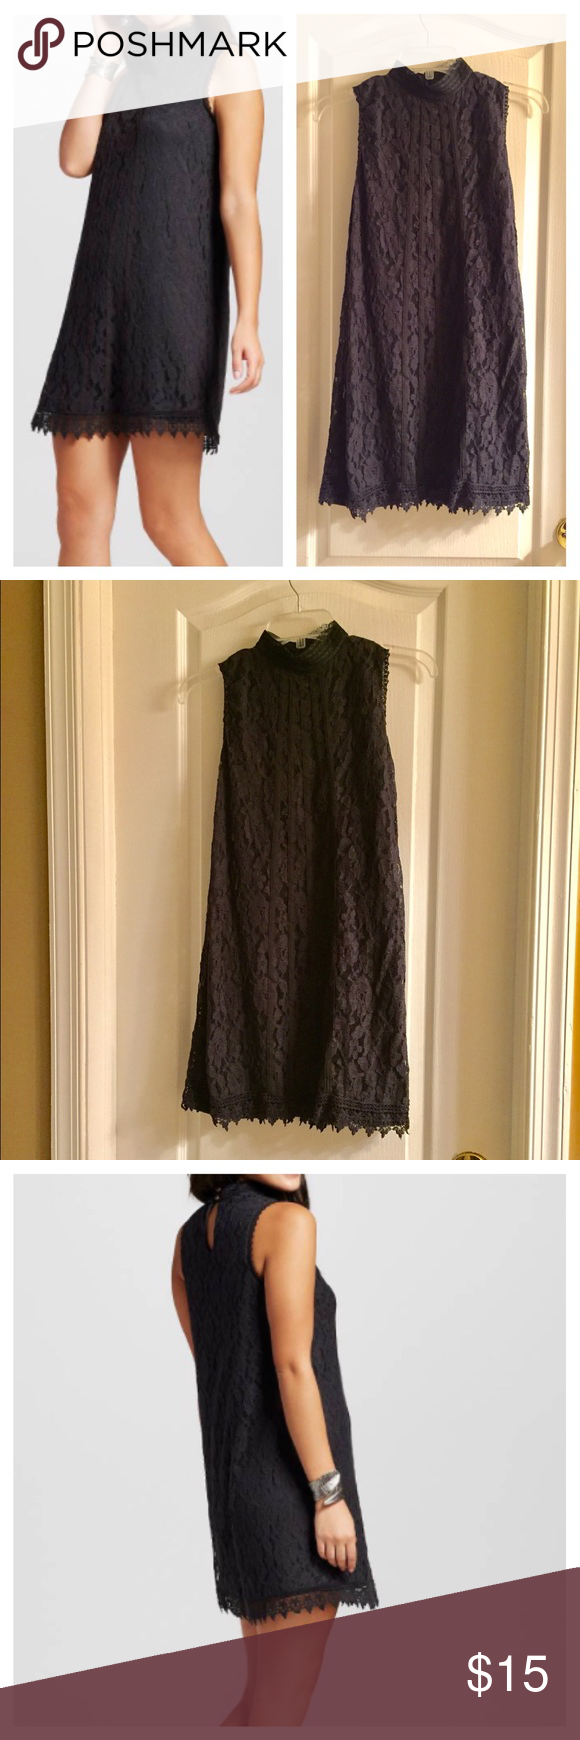 Black Lace Mock Neck Shift Dress New! Only worn once! Beautiful and classy black lace dress, with mock neck. Pin hole button detail in back. Shift dress. Xhilaration Dresses Mini